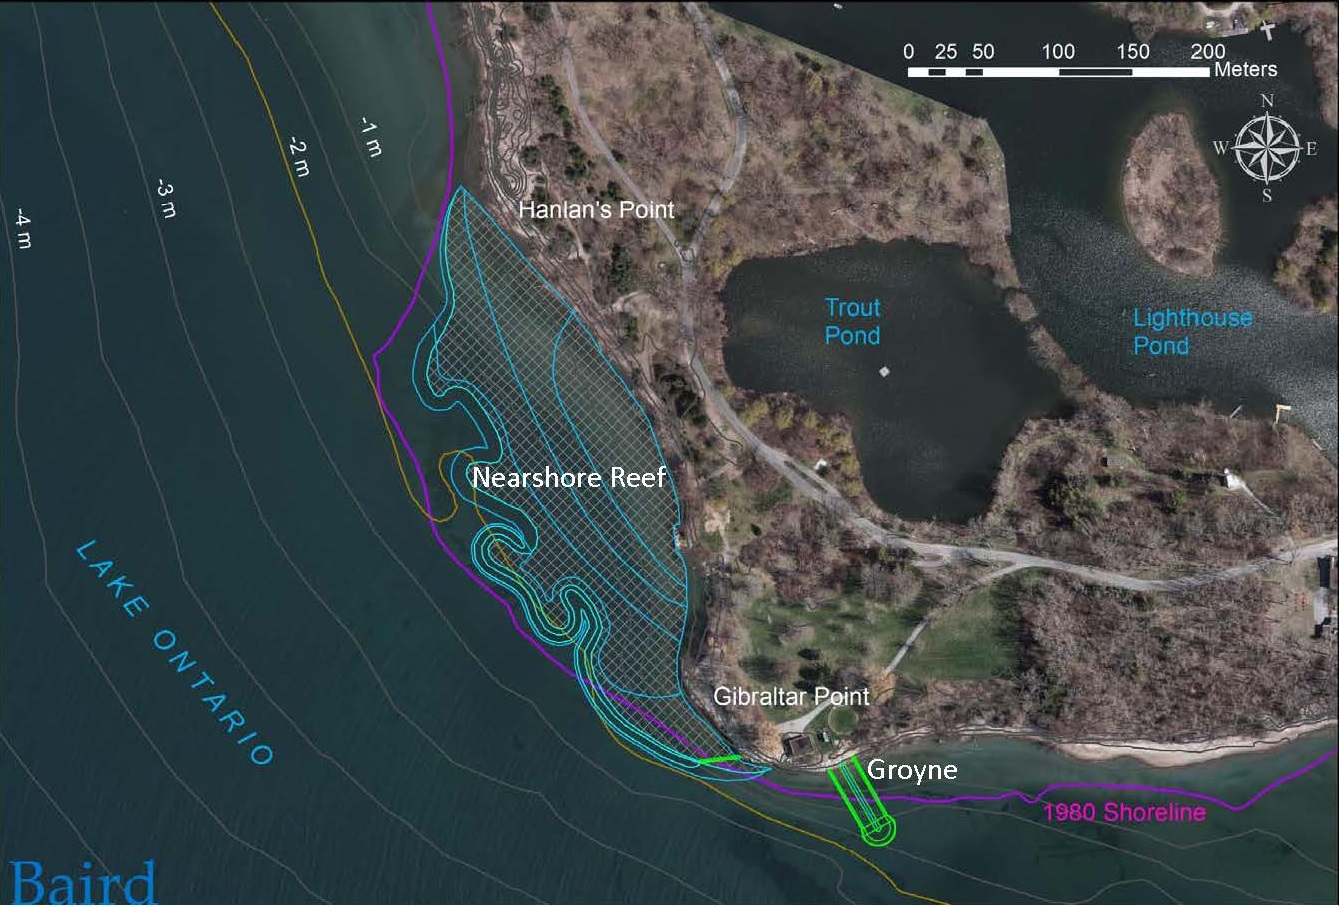 map of proposed nearshore reef at Gibraltar Point